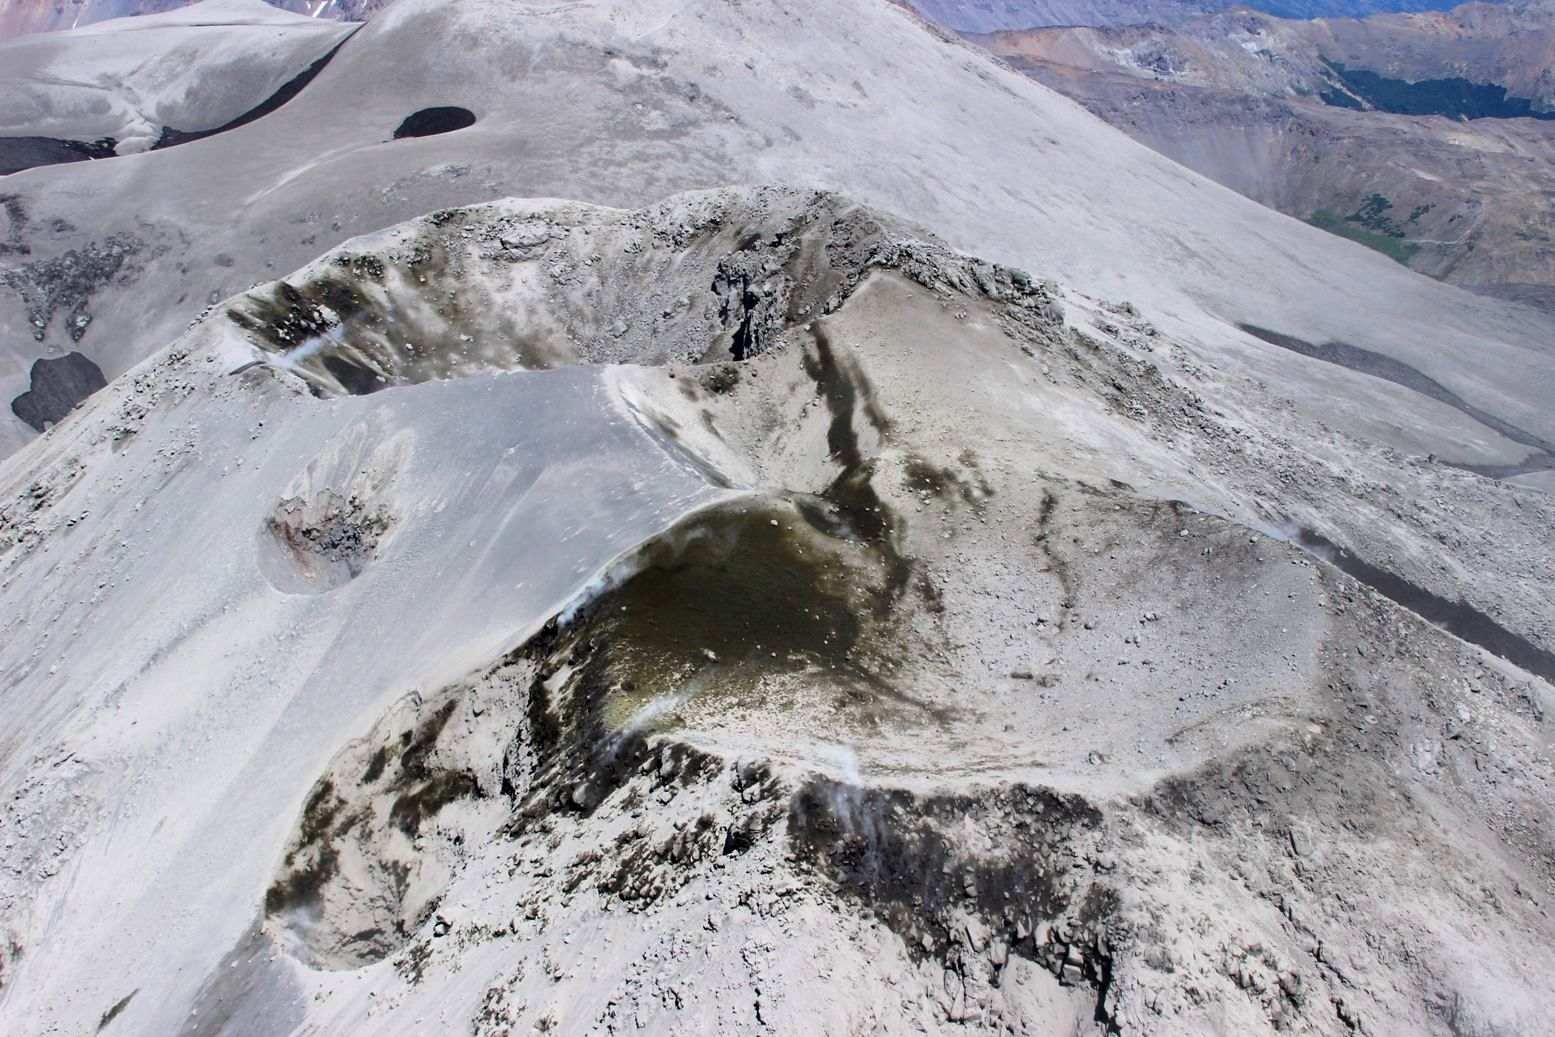 "Summit craters of Nevados de Chillan - from front to back, the Nuevo crater, with at his left, the Crater of January 8 - after, the crater formed in 2003, in the background, the Arrau crater, with the ""new crater"" on its side under the left edge of the crater - photo SERNAGEOMIN"